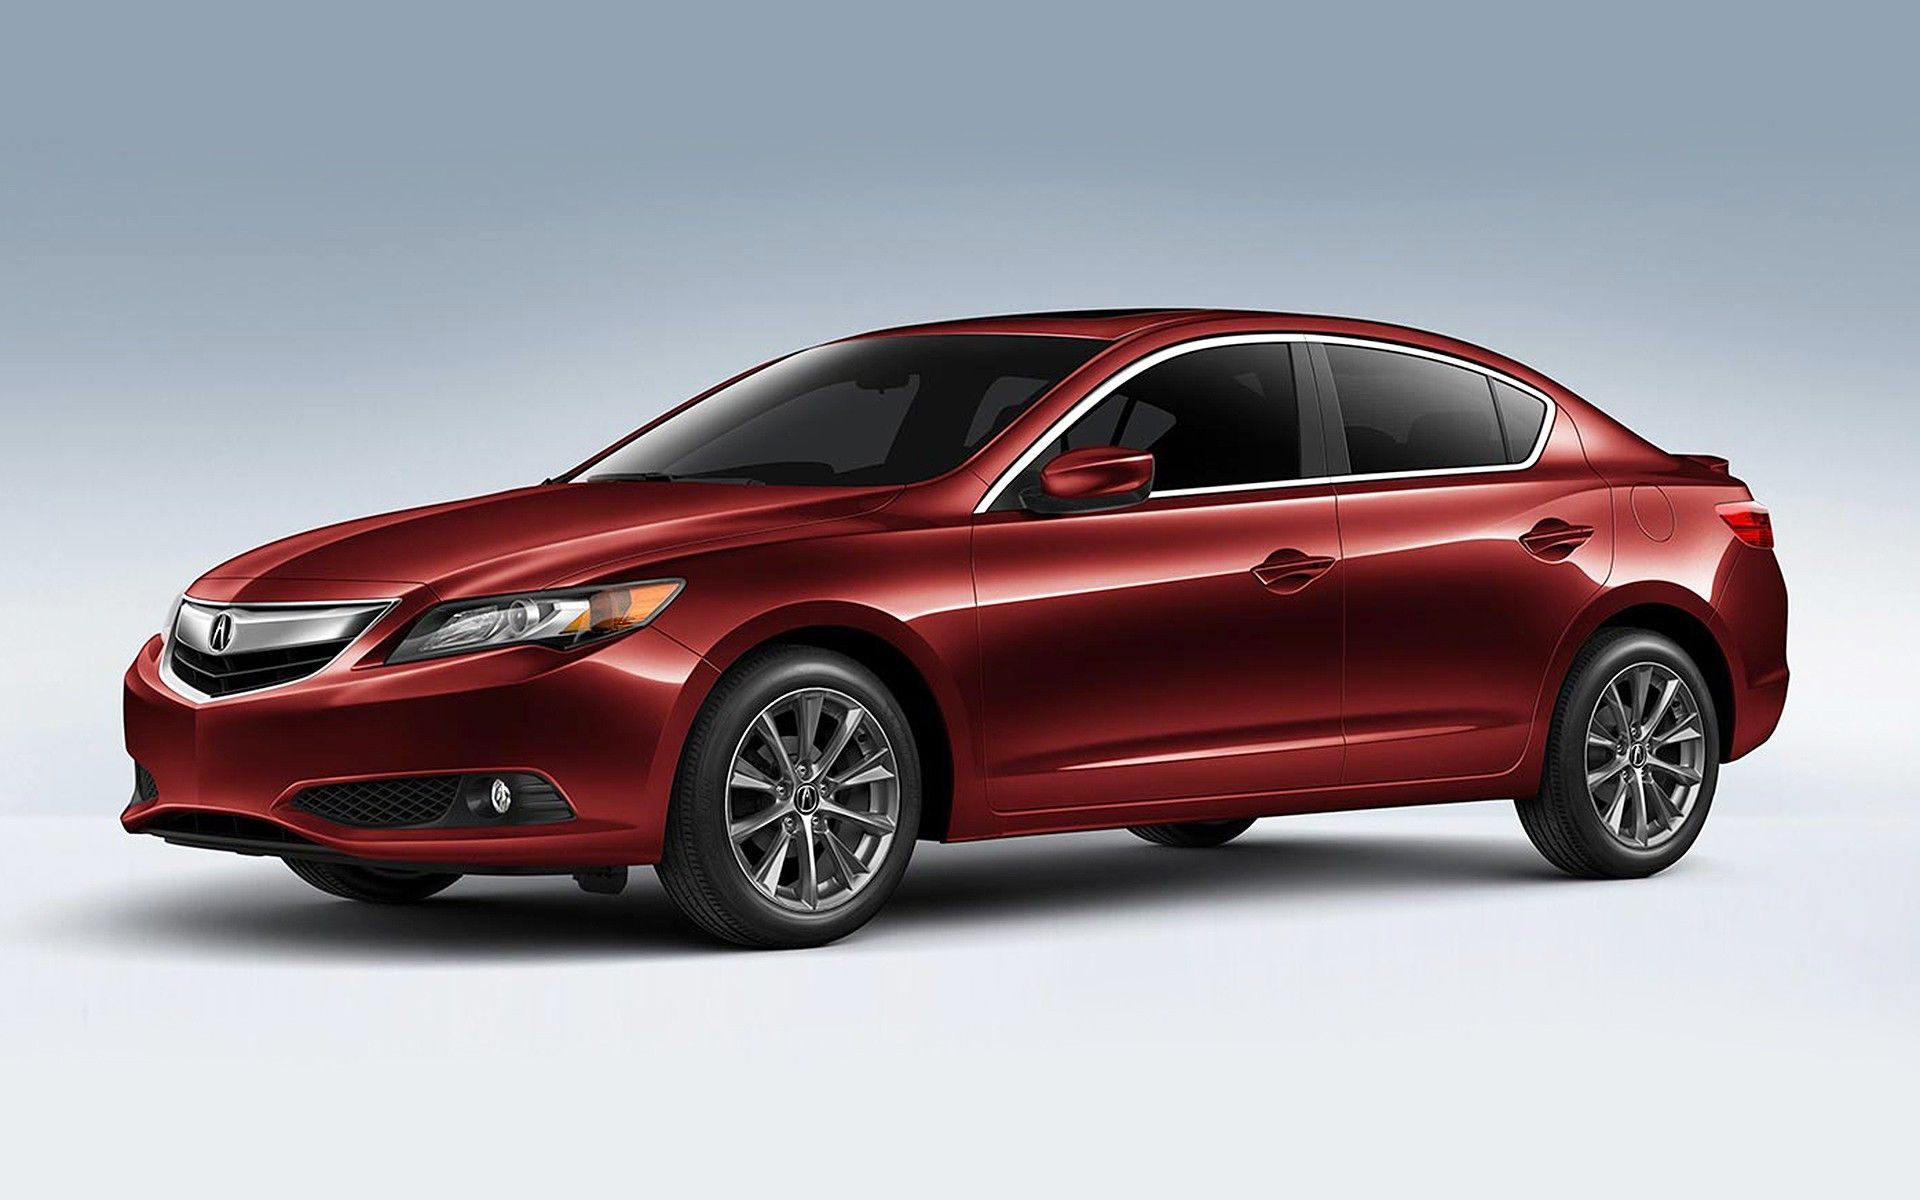 2015 Acura ILX Full HD Car Wallpapers Sedán